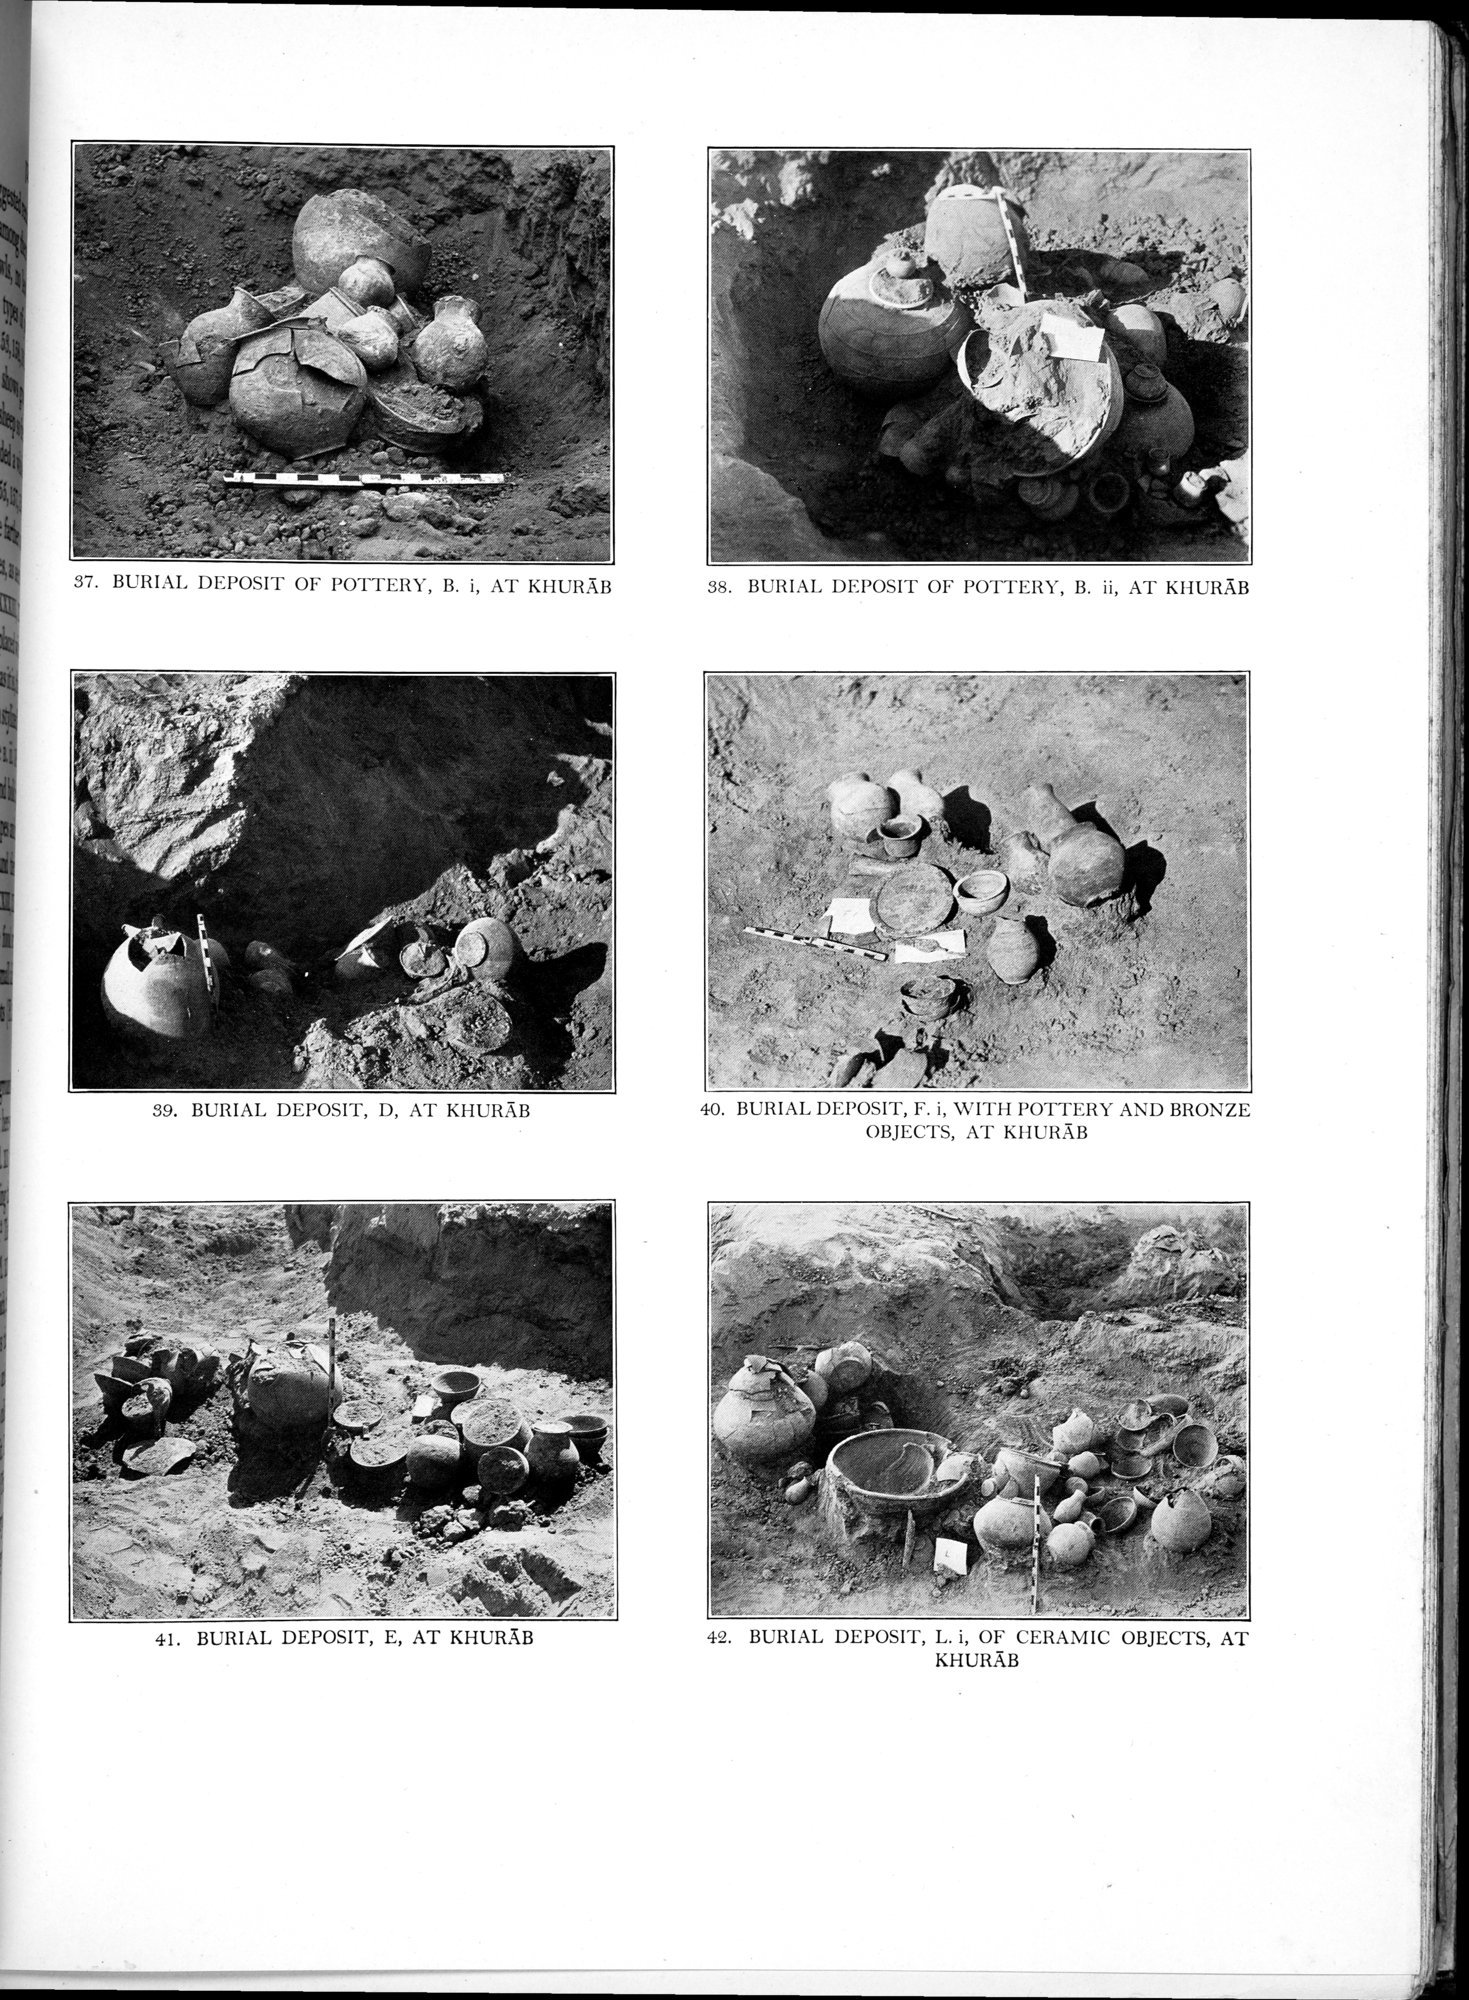 Archaeological Reconnaissances in North-Western India and South-Eastern Īrān : vol.1 / Page 173 (Grayscale High Resolution Image)